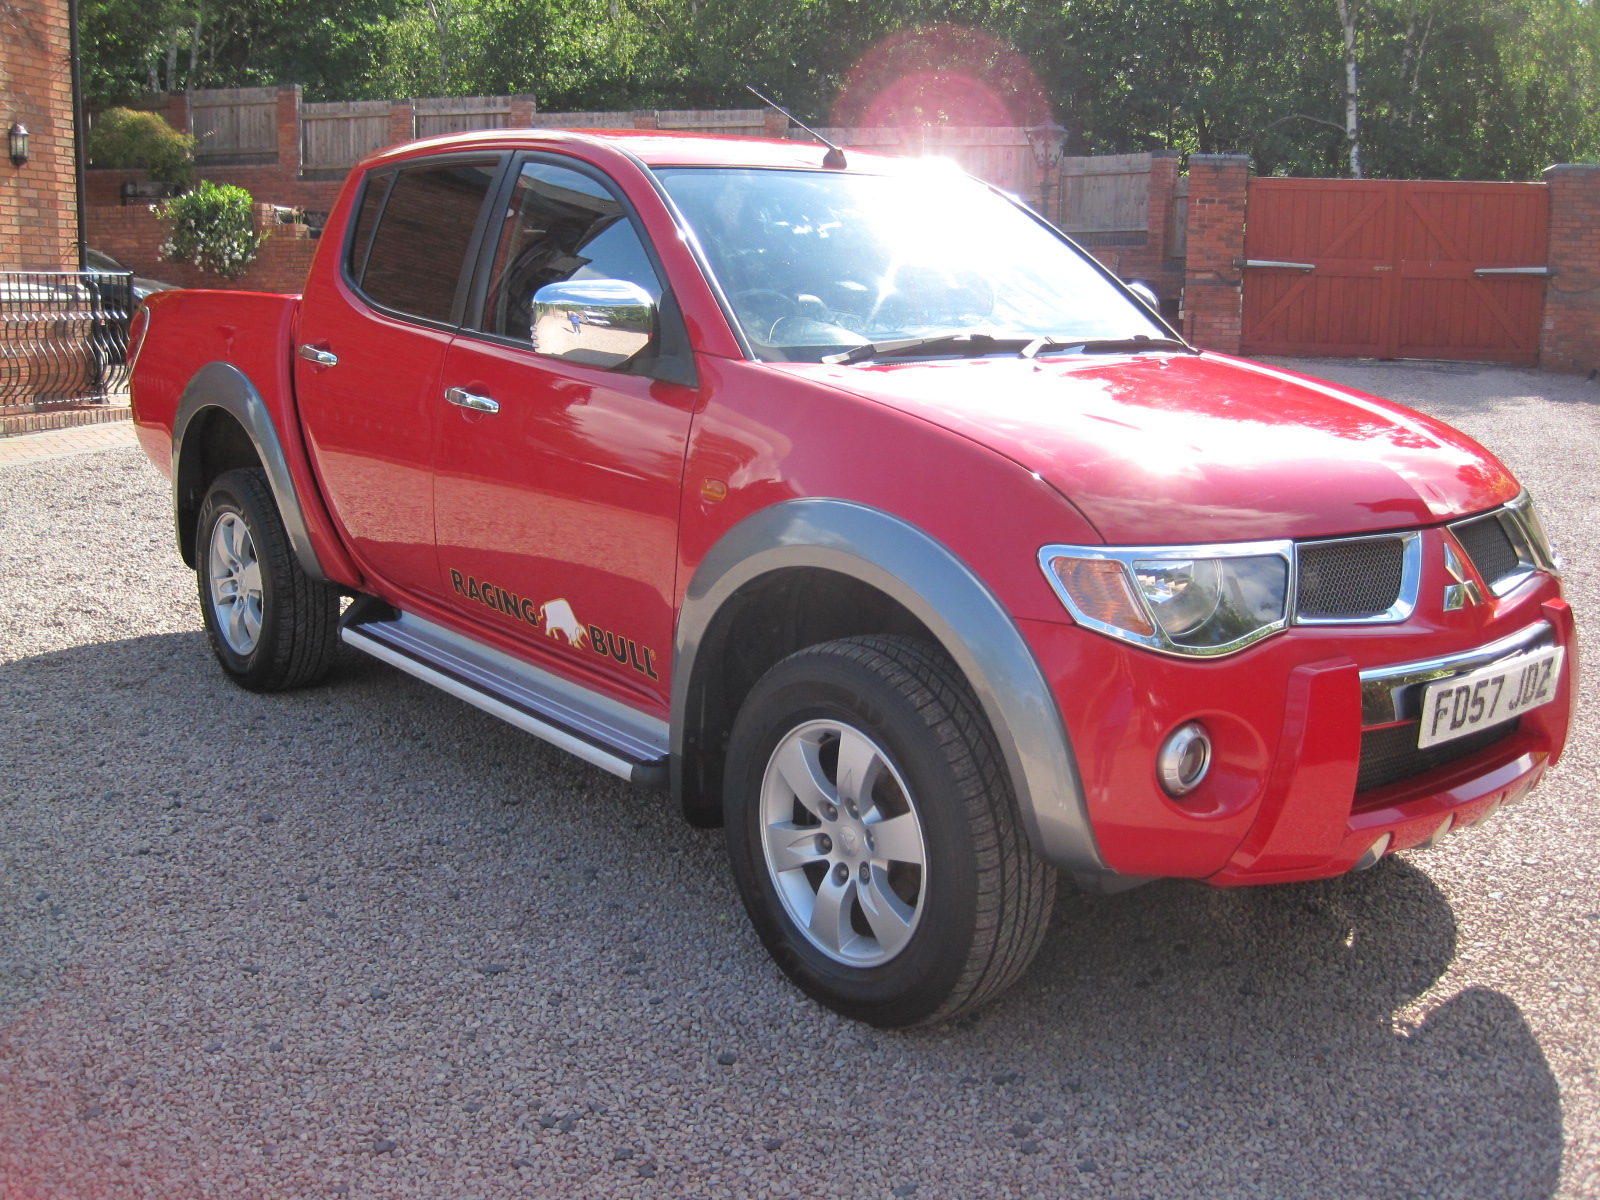 2007 57 Mitsubishi L200 2.5 DI-D Raging Bull Double Cab Pickup 4dr (Smart Nav) OUTSTANDING CONDITION THROUGHOUT! NO VAT!